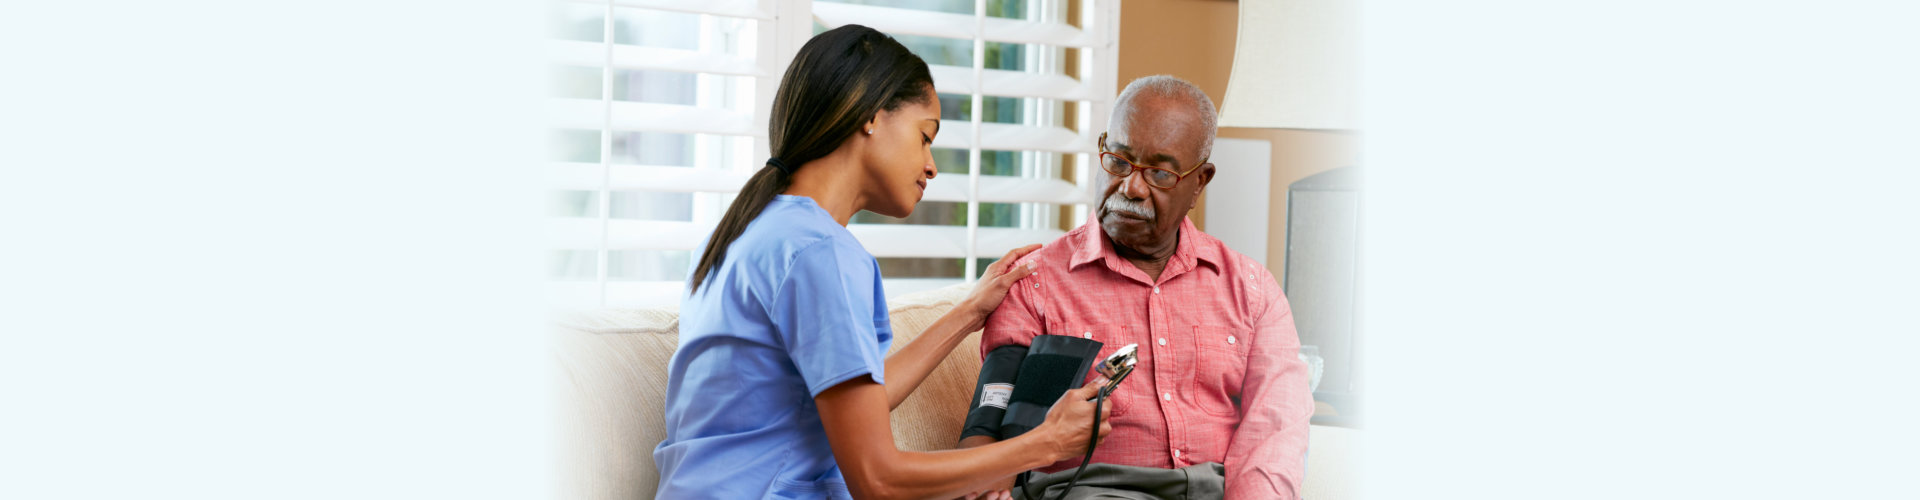 Nurse Visiting Senior Male Patient At Home Taking Notes